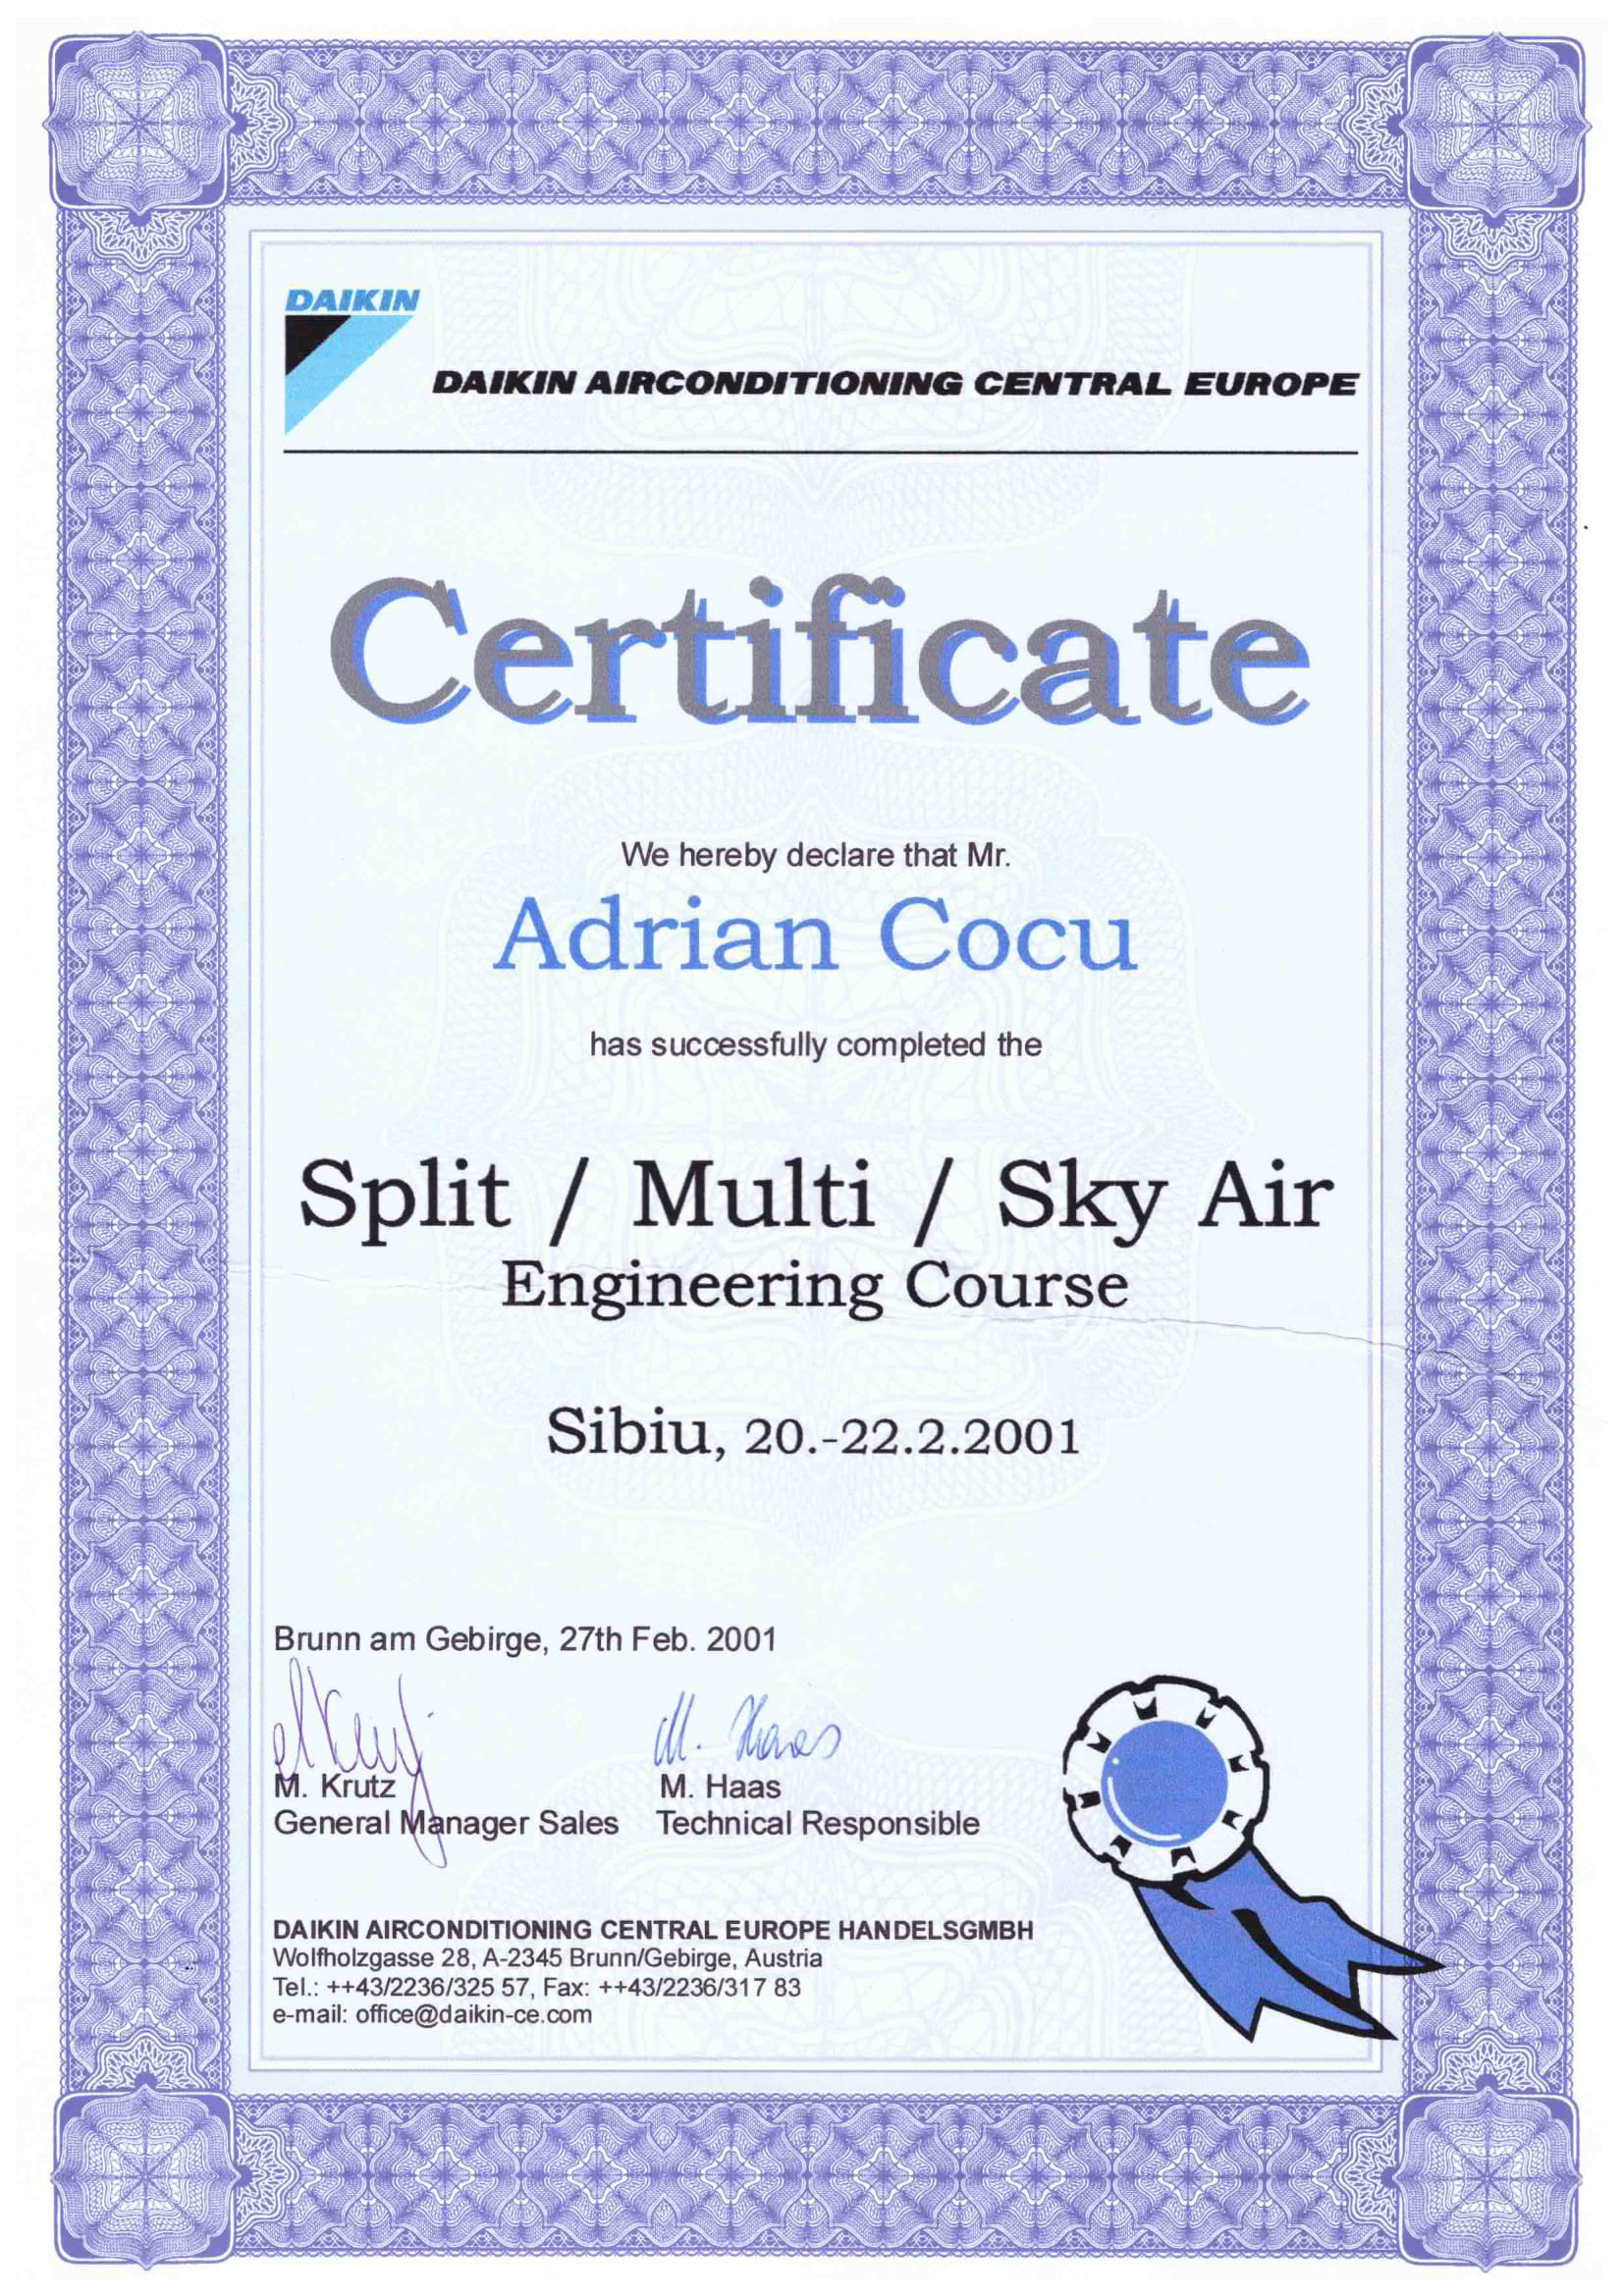 Certificat SPLIT_MULTI_SKY AIR ENGINEERING COURSE_COCU ADRIAN